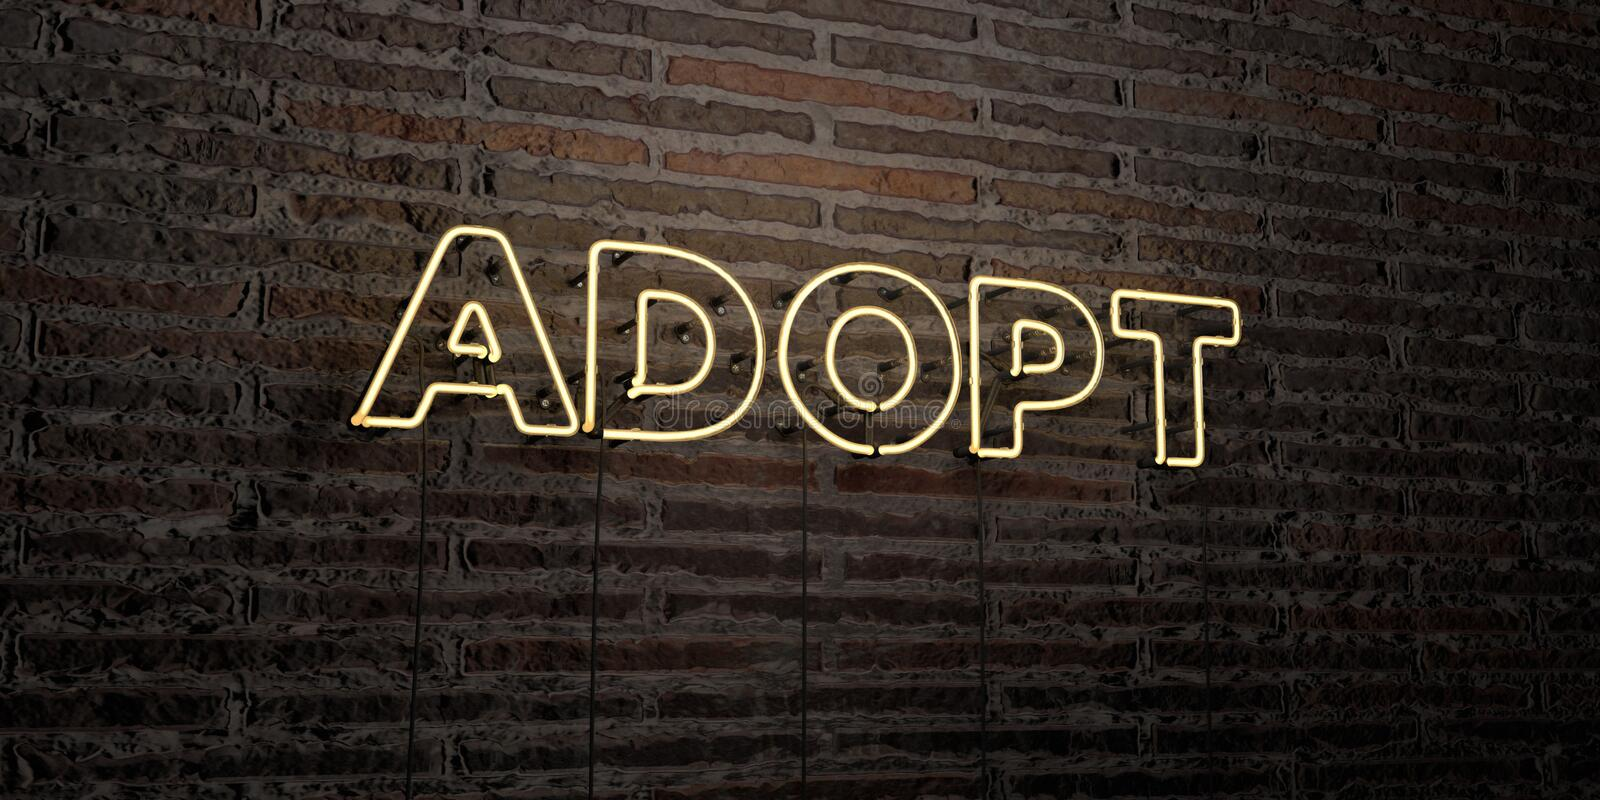 ADOPT -Realistic Neon Sign on Brick Wall background - 3D rendered royalty free stock image. Can be used for online banner ads and direct mailers royalty free illustration